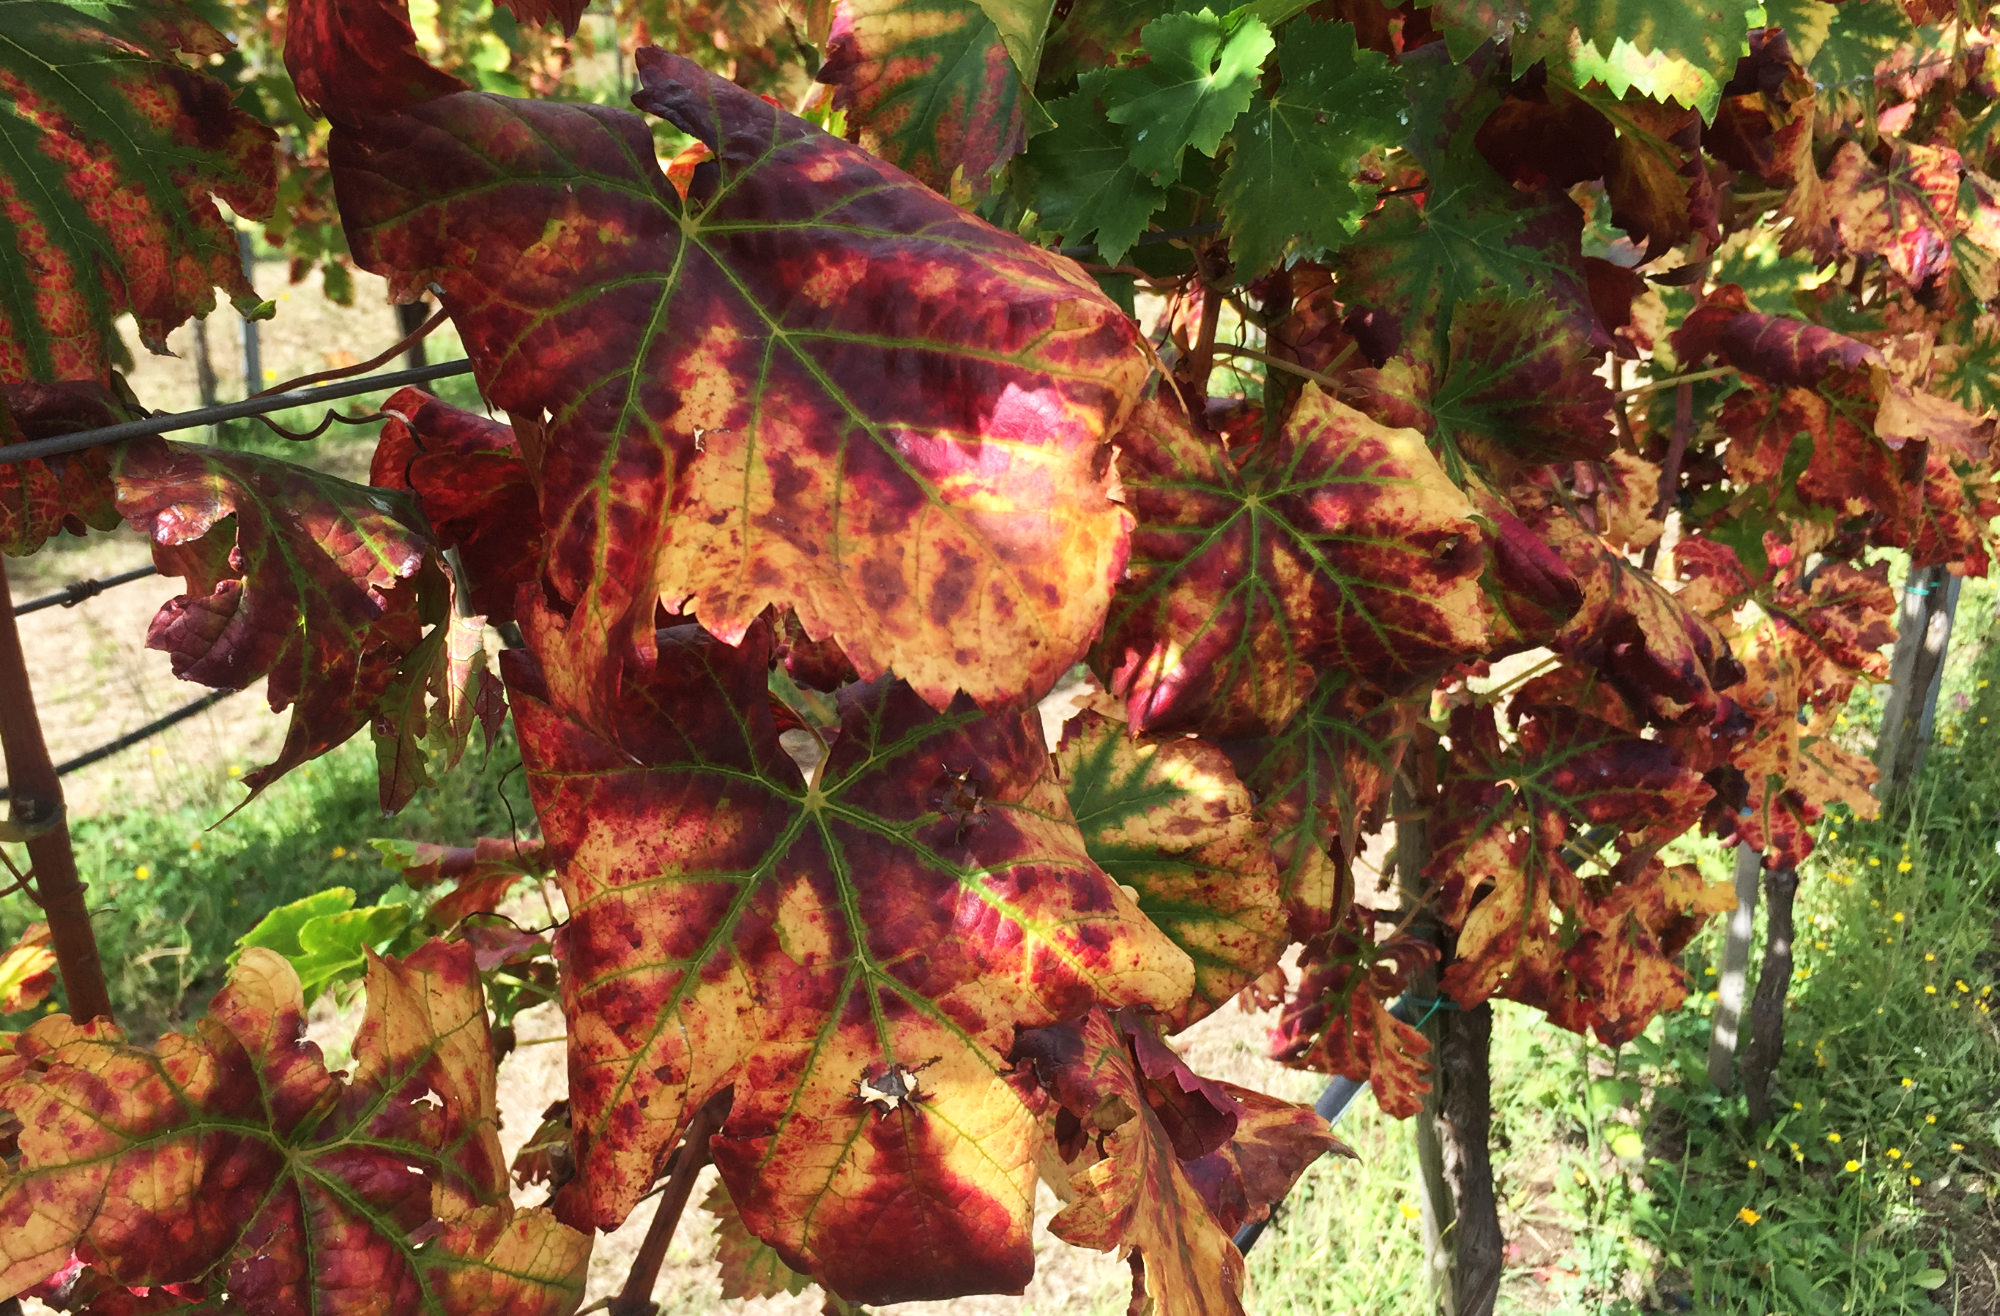 Red vine leaves in autumn